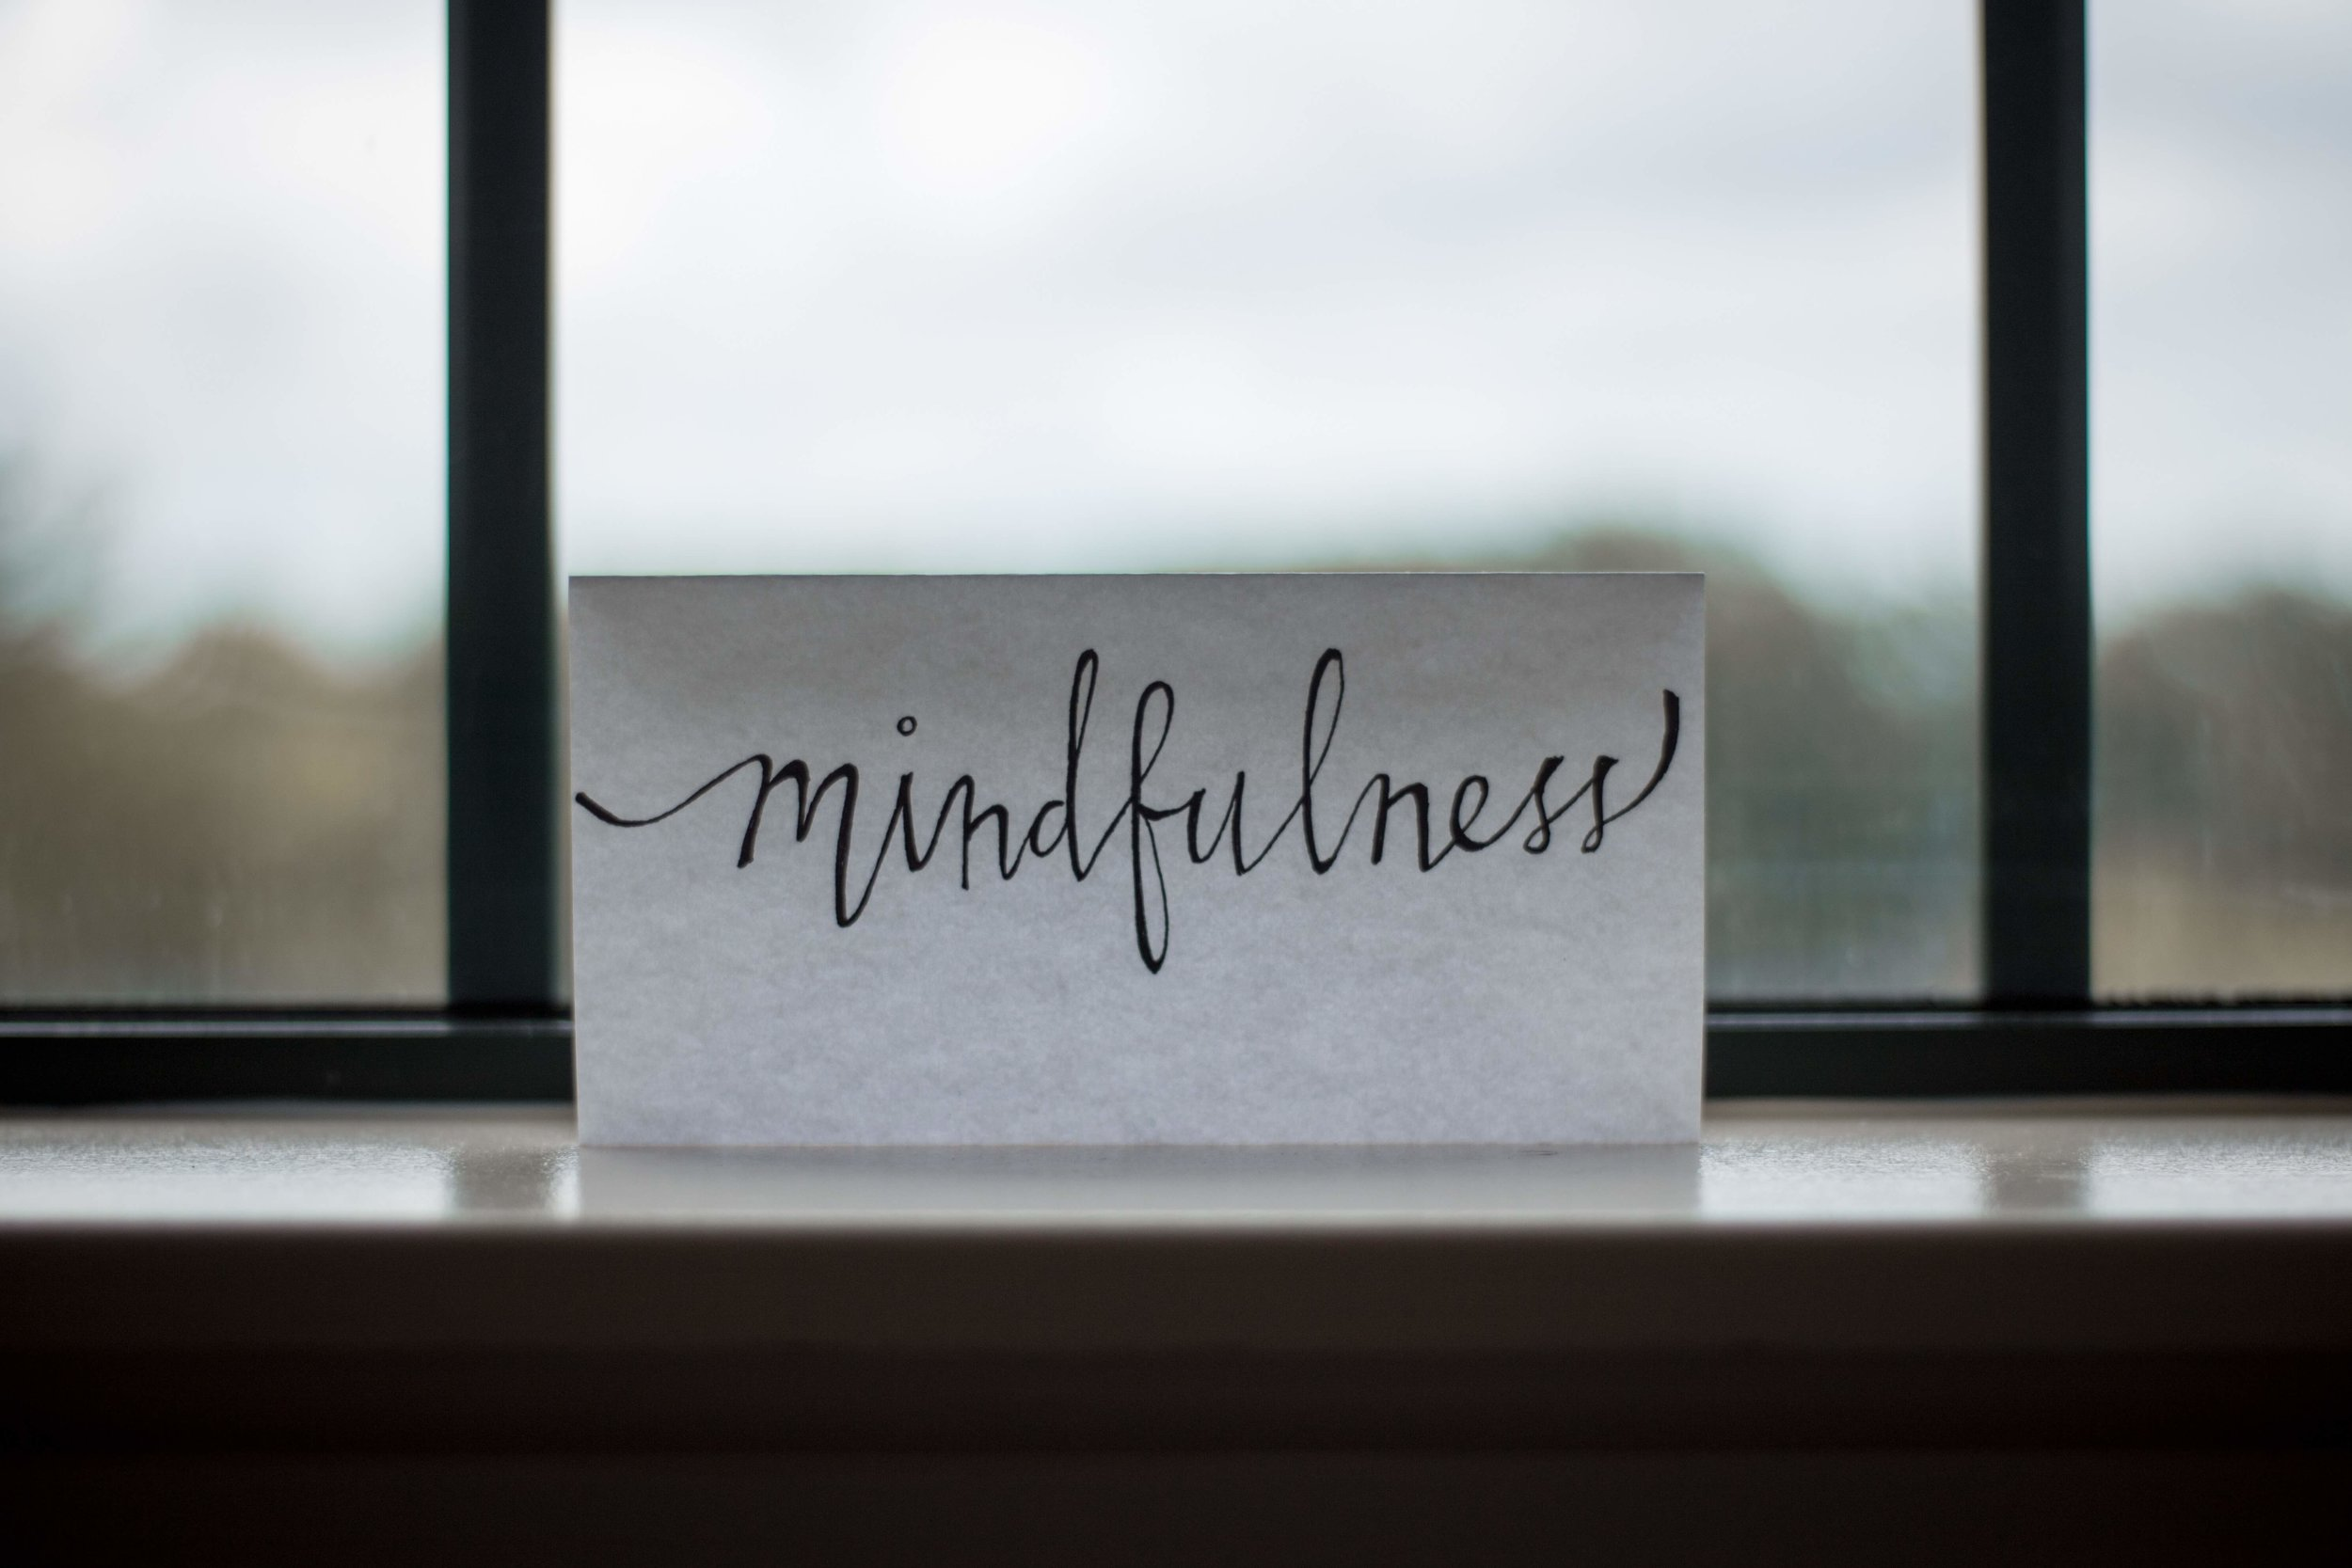 Mindfulness brings clarity, insight, acceptance and harmony. - Less stress - More joy.